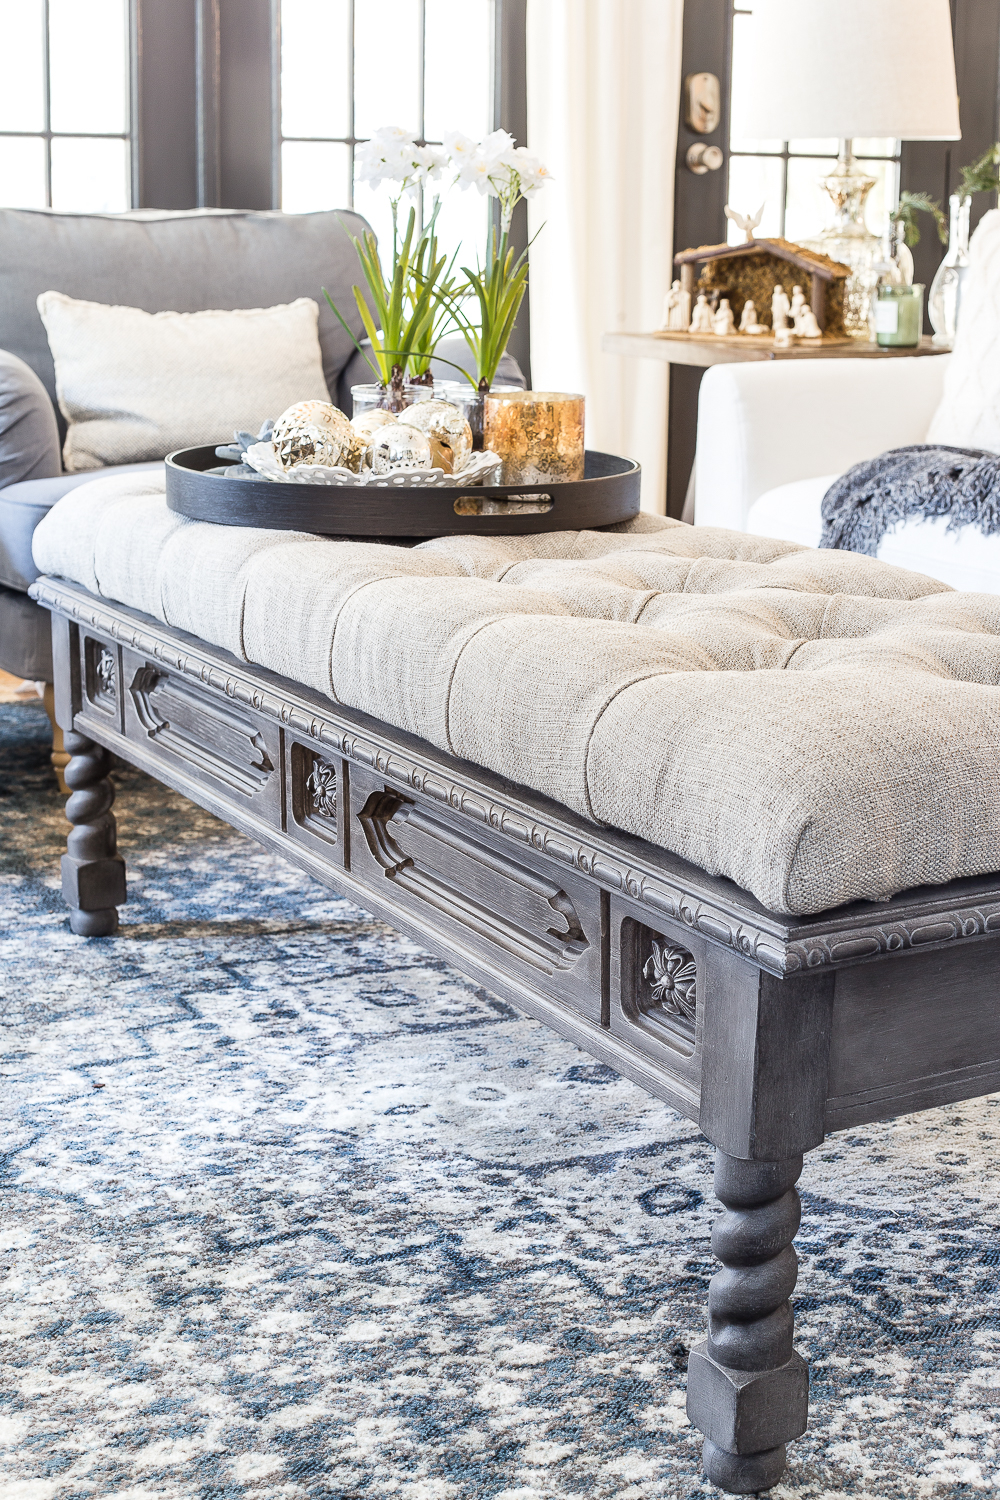 Diy Ottoman Bench From A Repurposed Coffee Table Blesser House in sizing 1000 X 1500